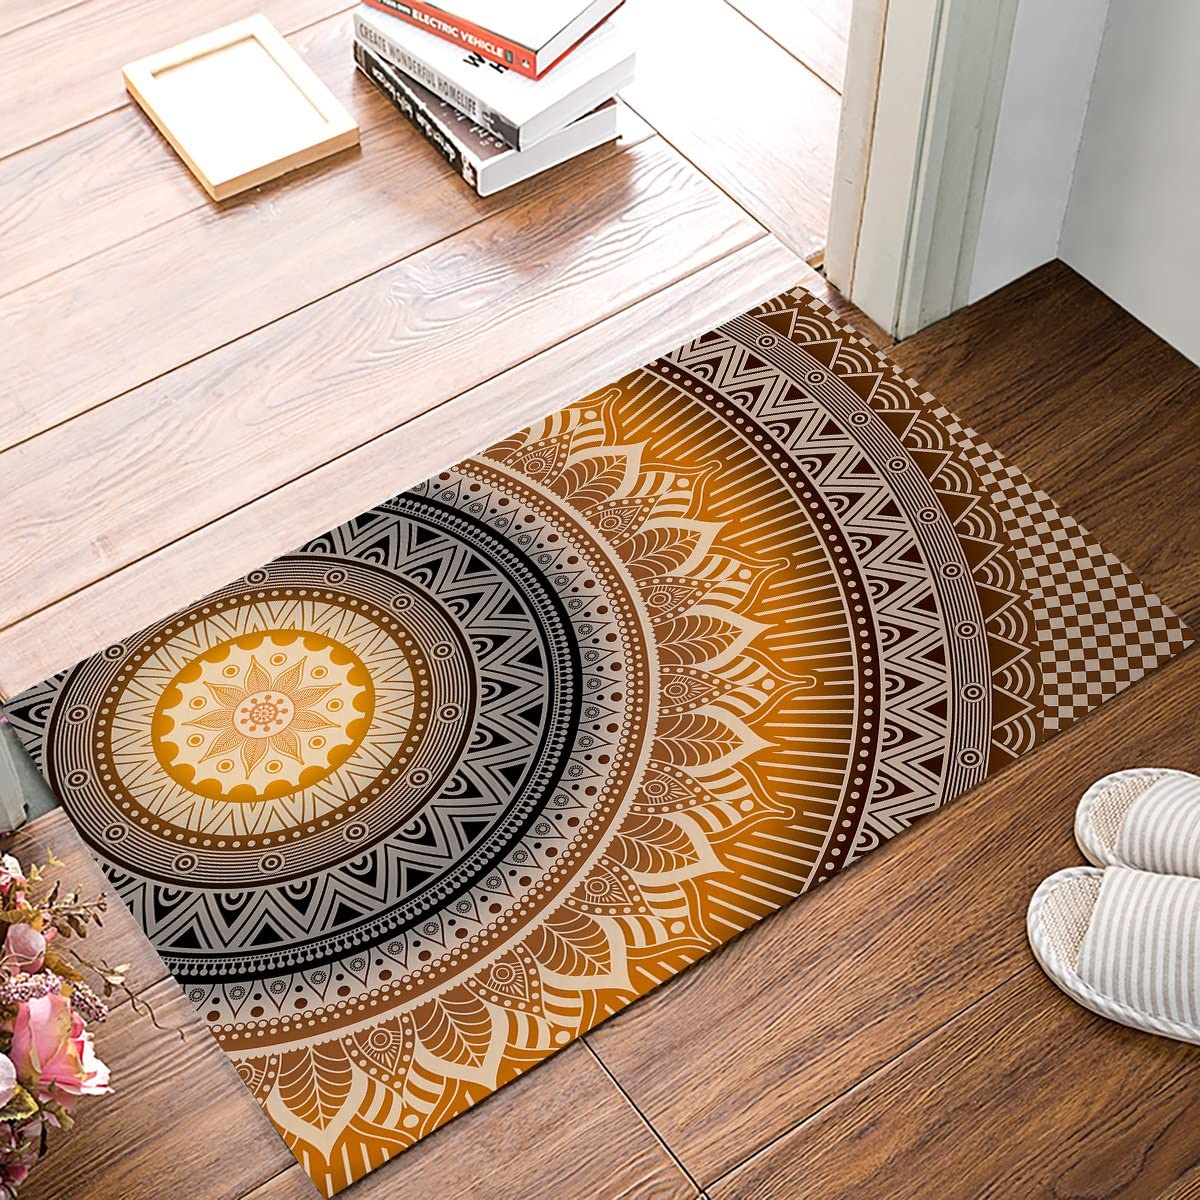 FAMILYDECOR Doormat for Entrance Way New Shipping Free Shipping Max 90% OFF Front Bathroom Door Indoor